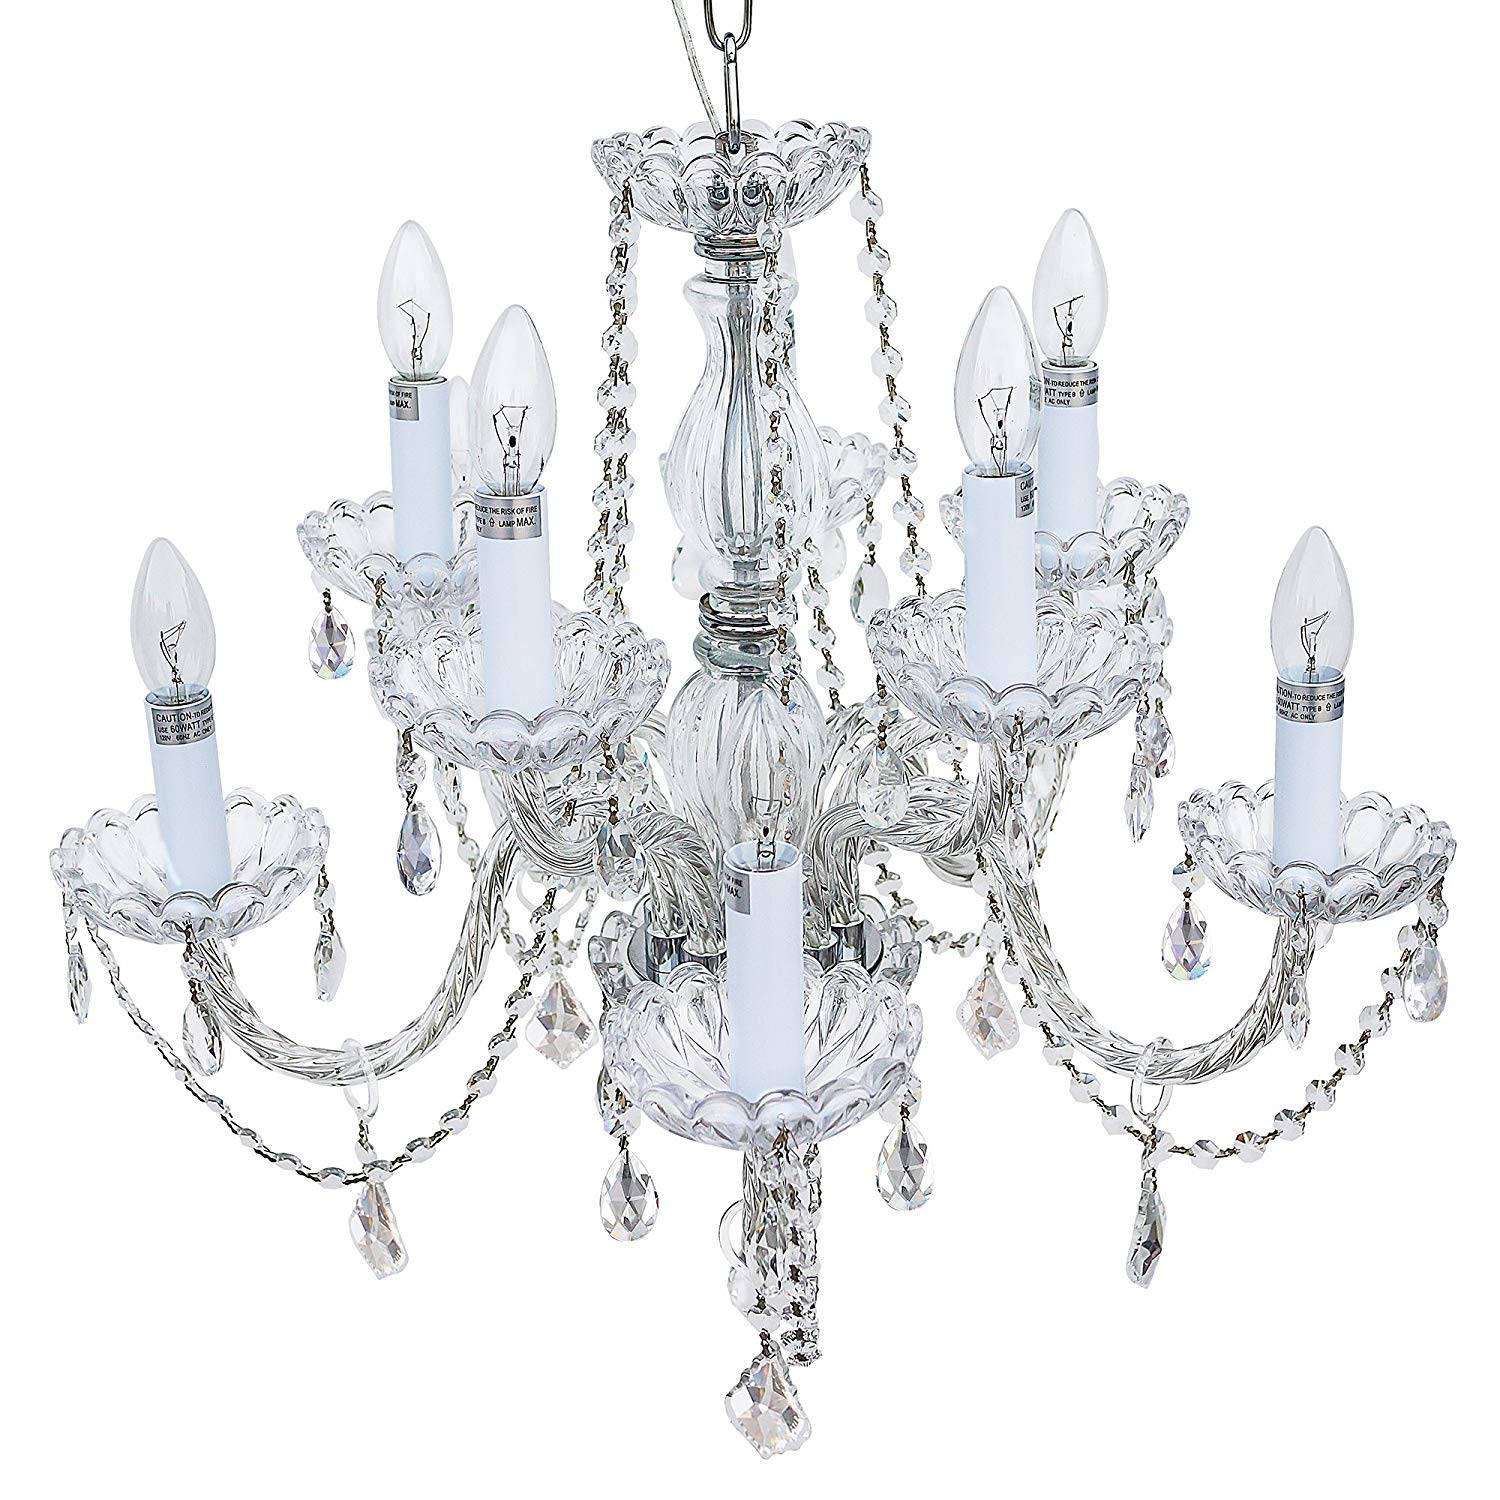 Starthi 10-Light Crystal Chandelier Candle Light Antique Ceiling Light with Clear Crystal K9 Beads, Metal Frame H 22'' W 25''